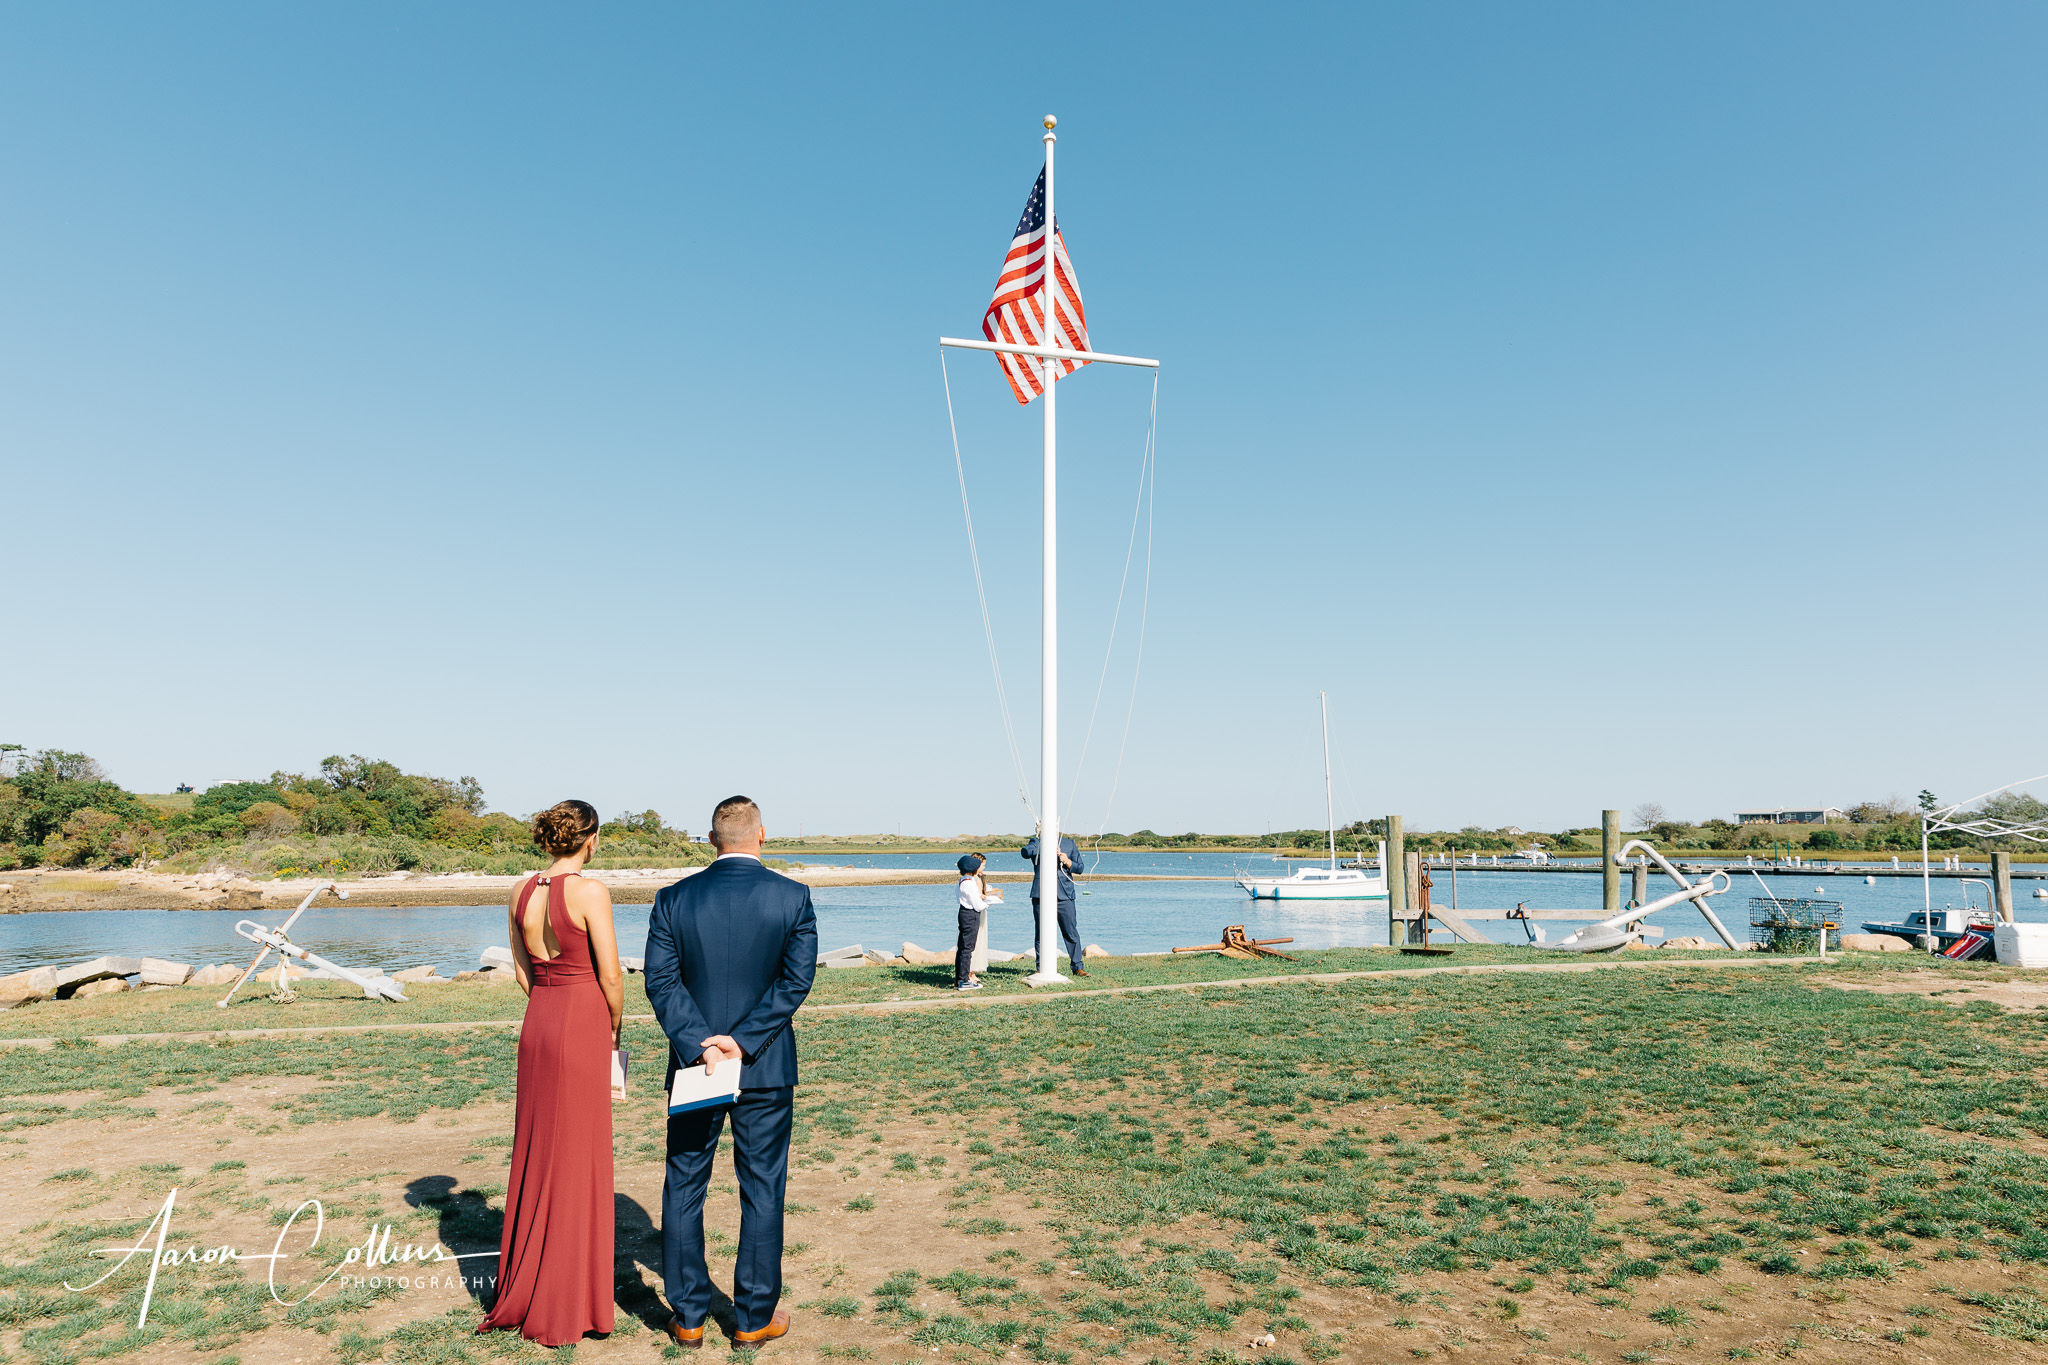 Flag is raised before the wedding ceremony begins with New Harbor Block Island and a few boats and other nautical gear visible in the background